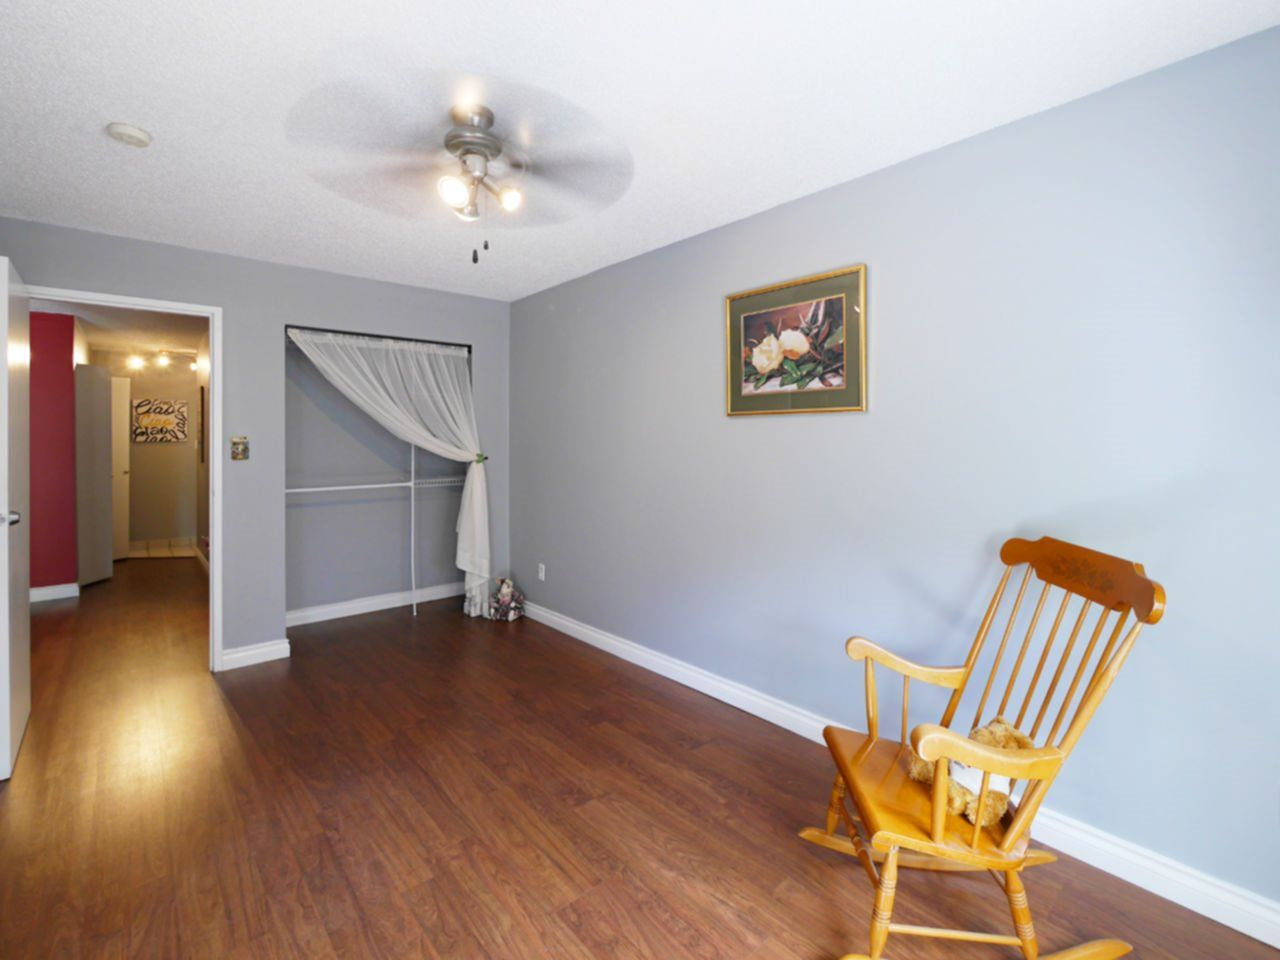 """Photo 15: Photos: 105 9952 149 Street in Surrey: Guildford Condo for sale in """"Tall Timbers"""" (North Surrey)  : MLS®# R2107429"""